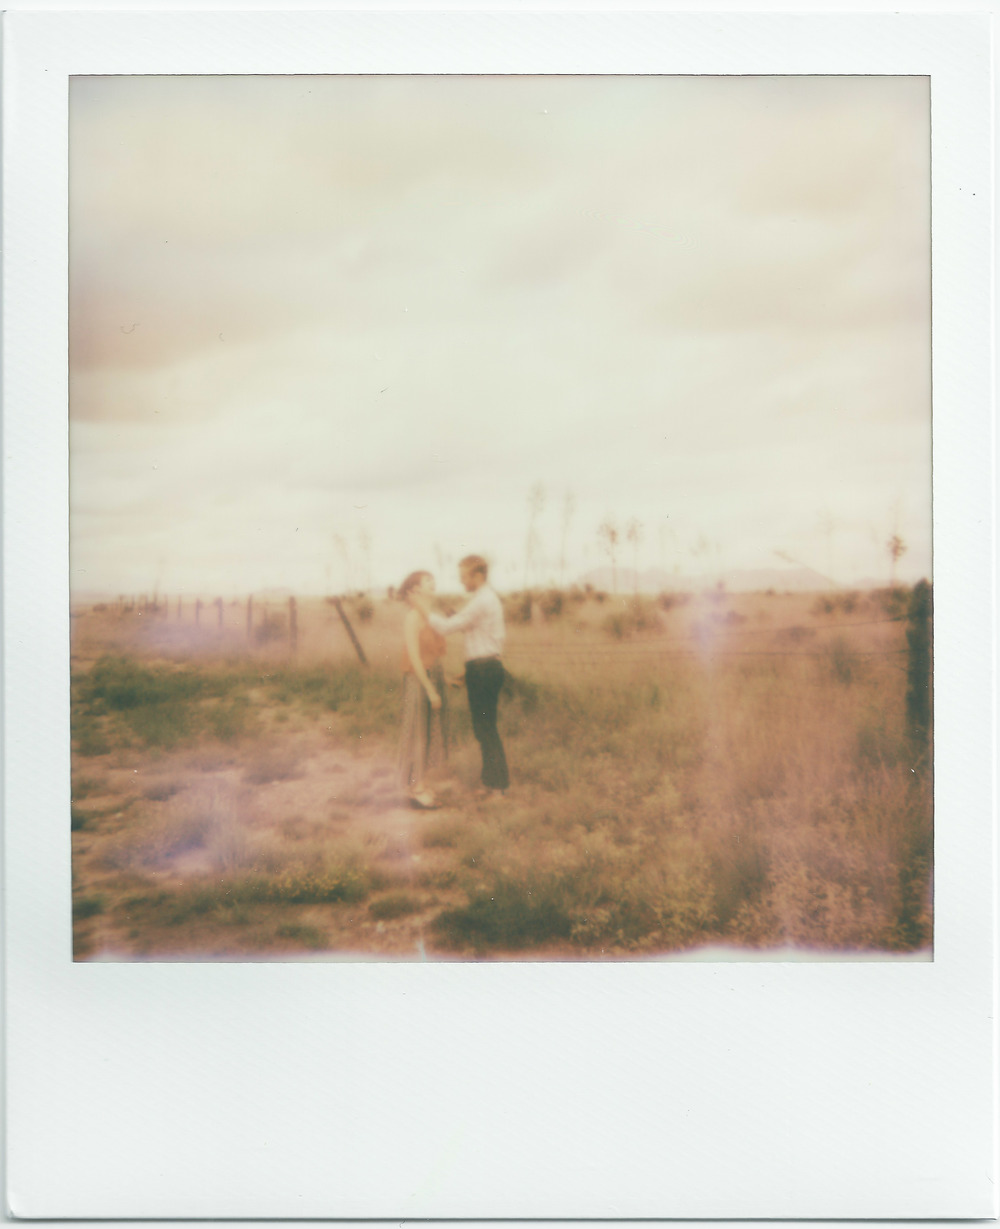 MARFA ENGAGEMENT PHOTOGRAPHER : JESSICA GARMON